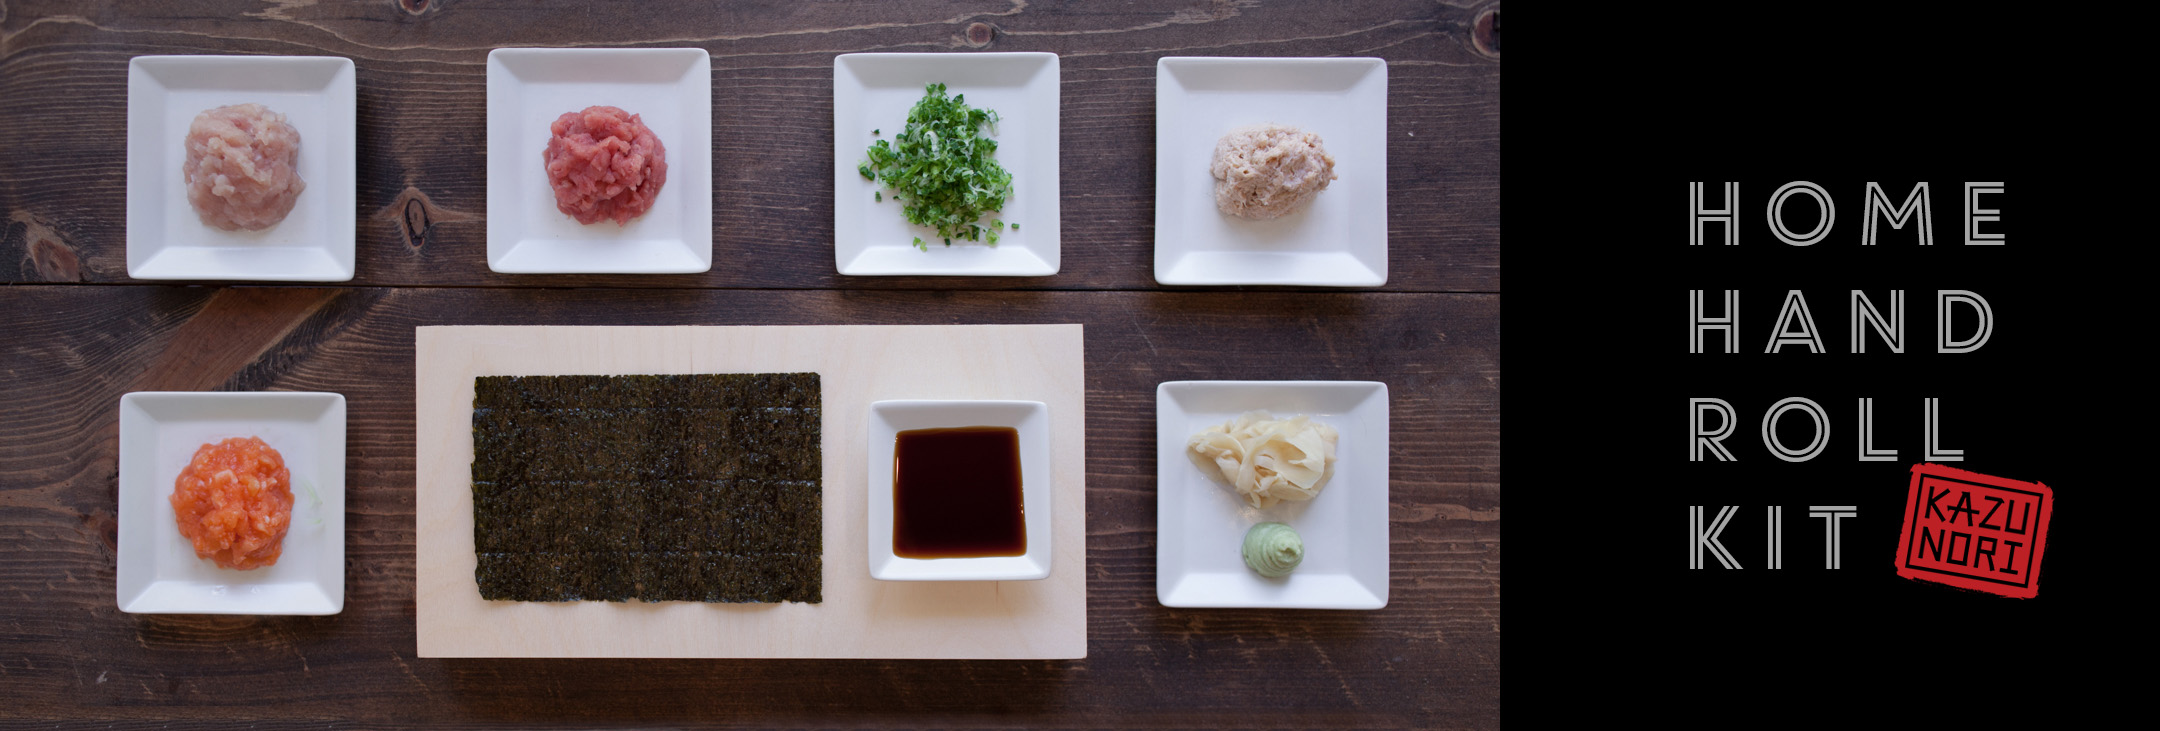 Home hand roll kit ingredients on white dishes